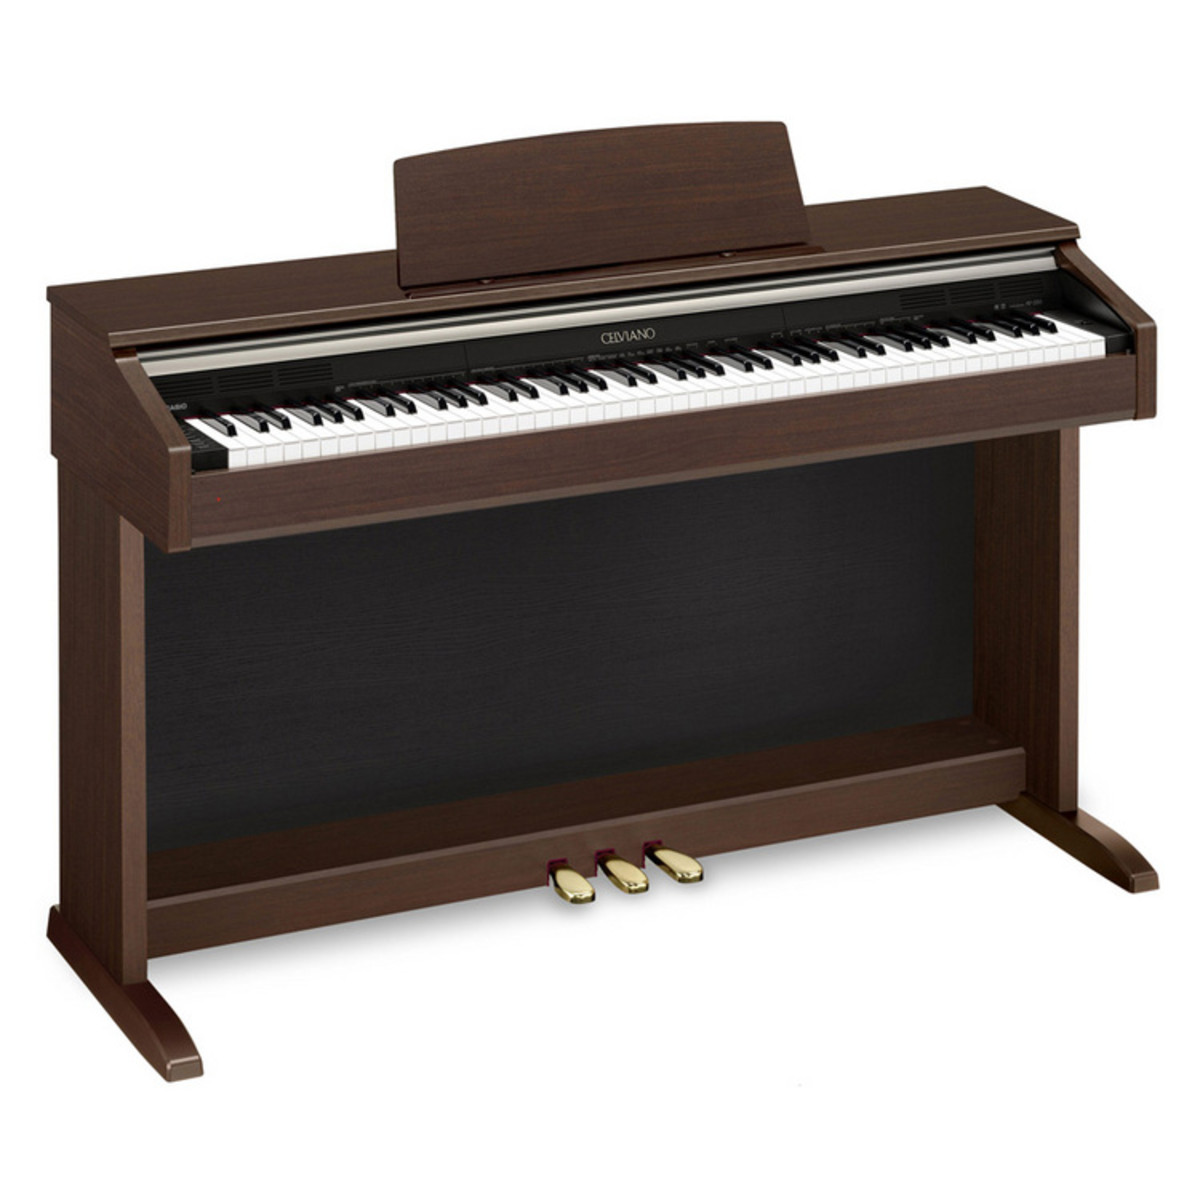 disc casio celviano ap 220 digital piano brown box opened at gear4music. Black Bedroom Furniture Sets. Home Design Ideas